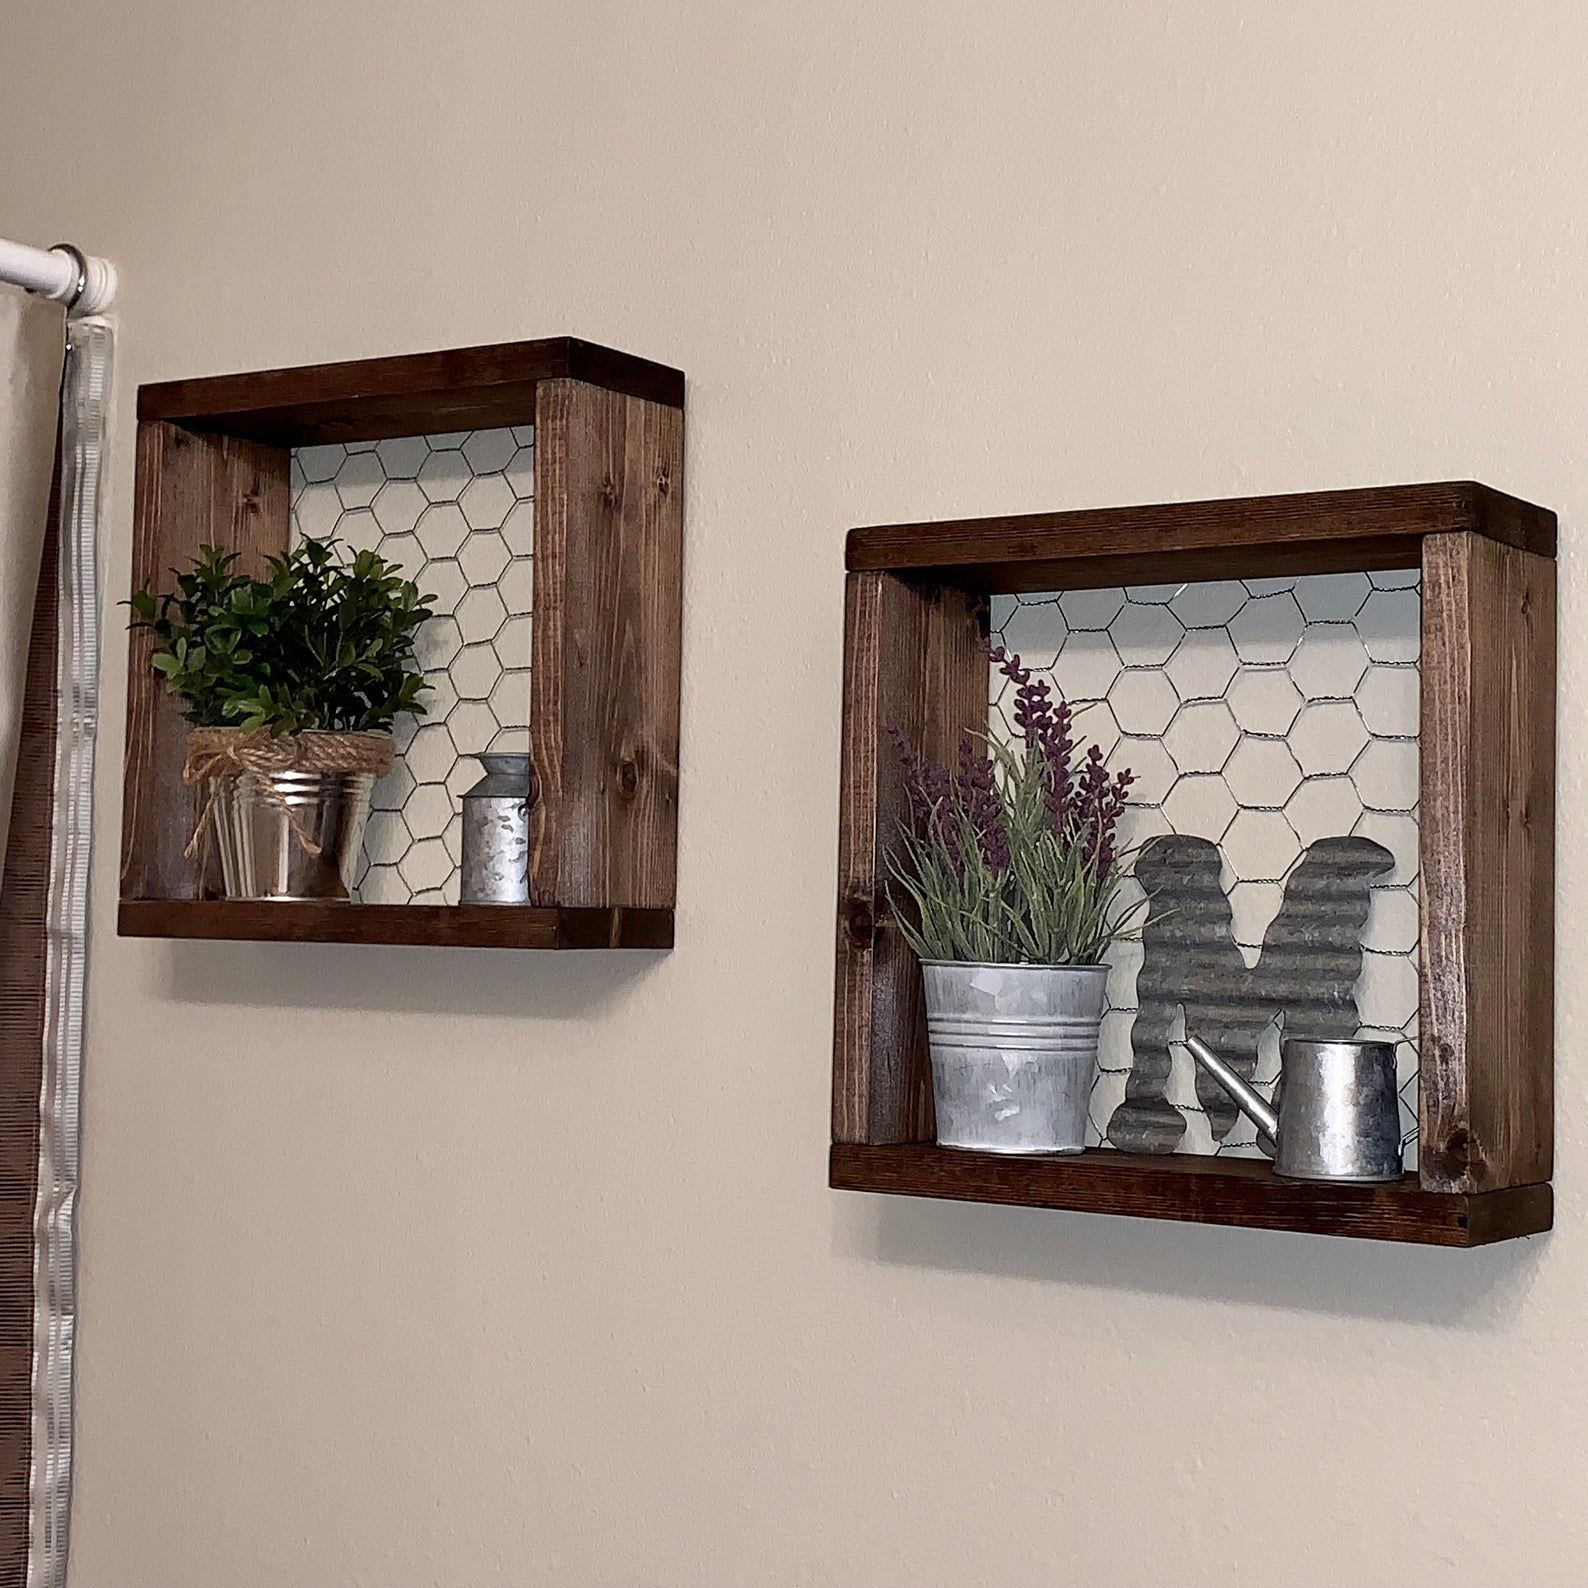 Farmhouse Style Shelves, Set of two Chicken Wire Shelves, Gallery Wall Decor, Bathroom Wall Decor